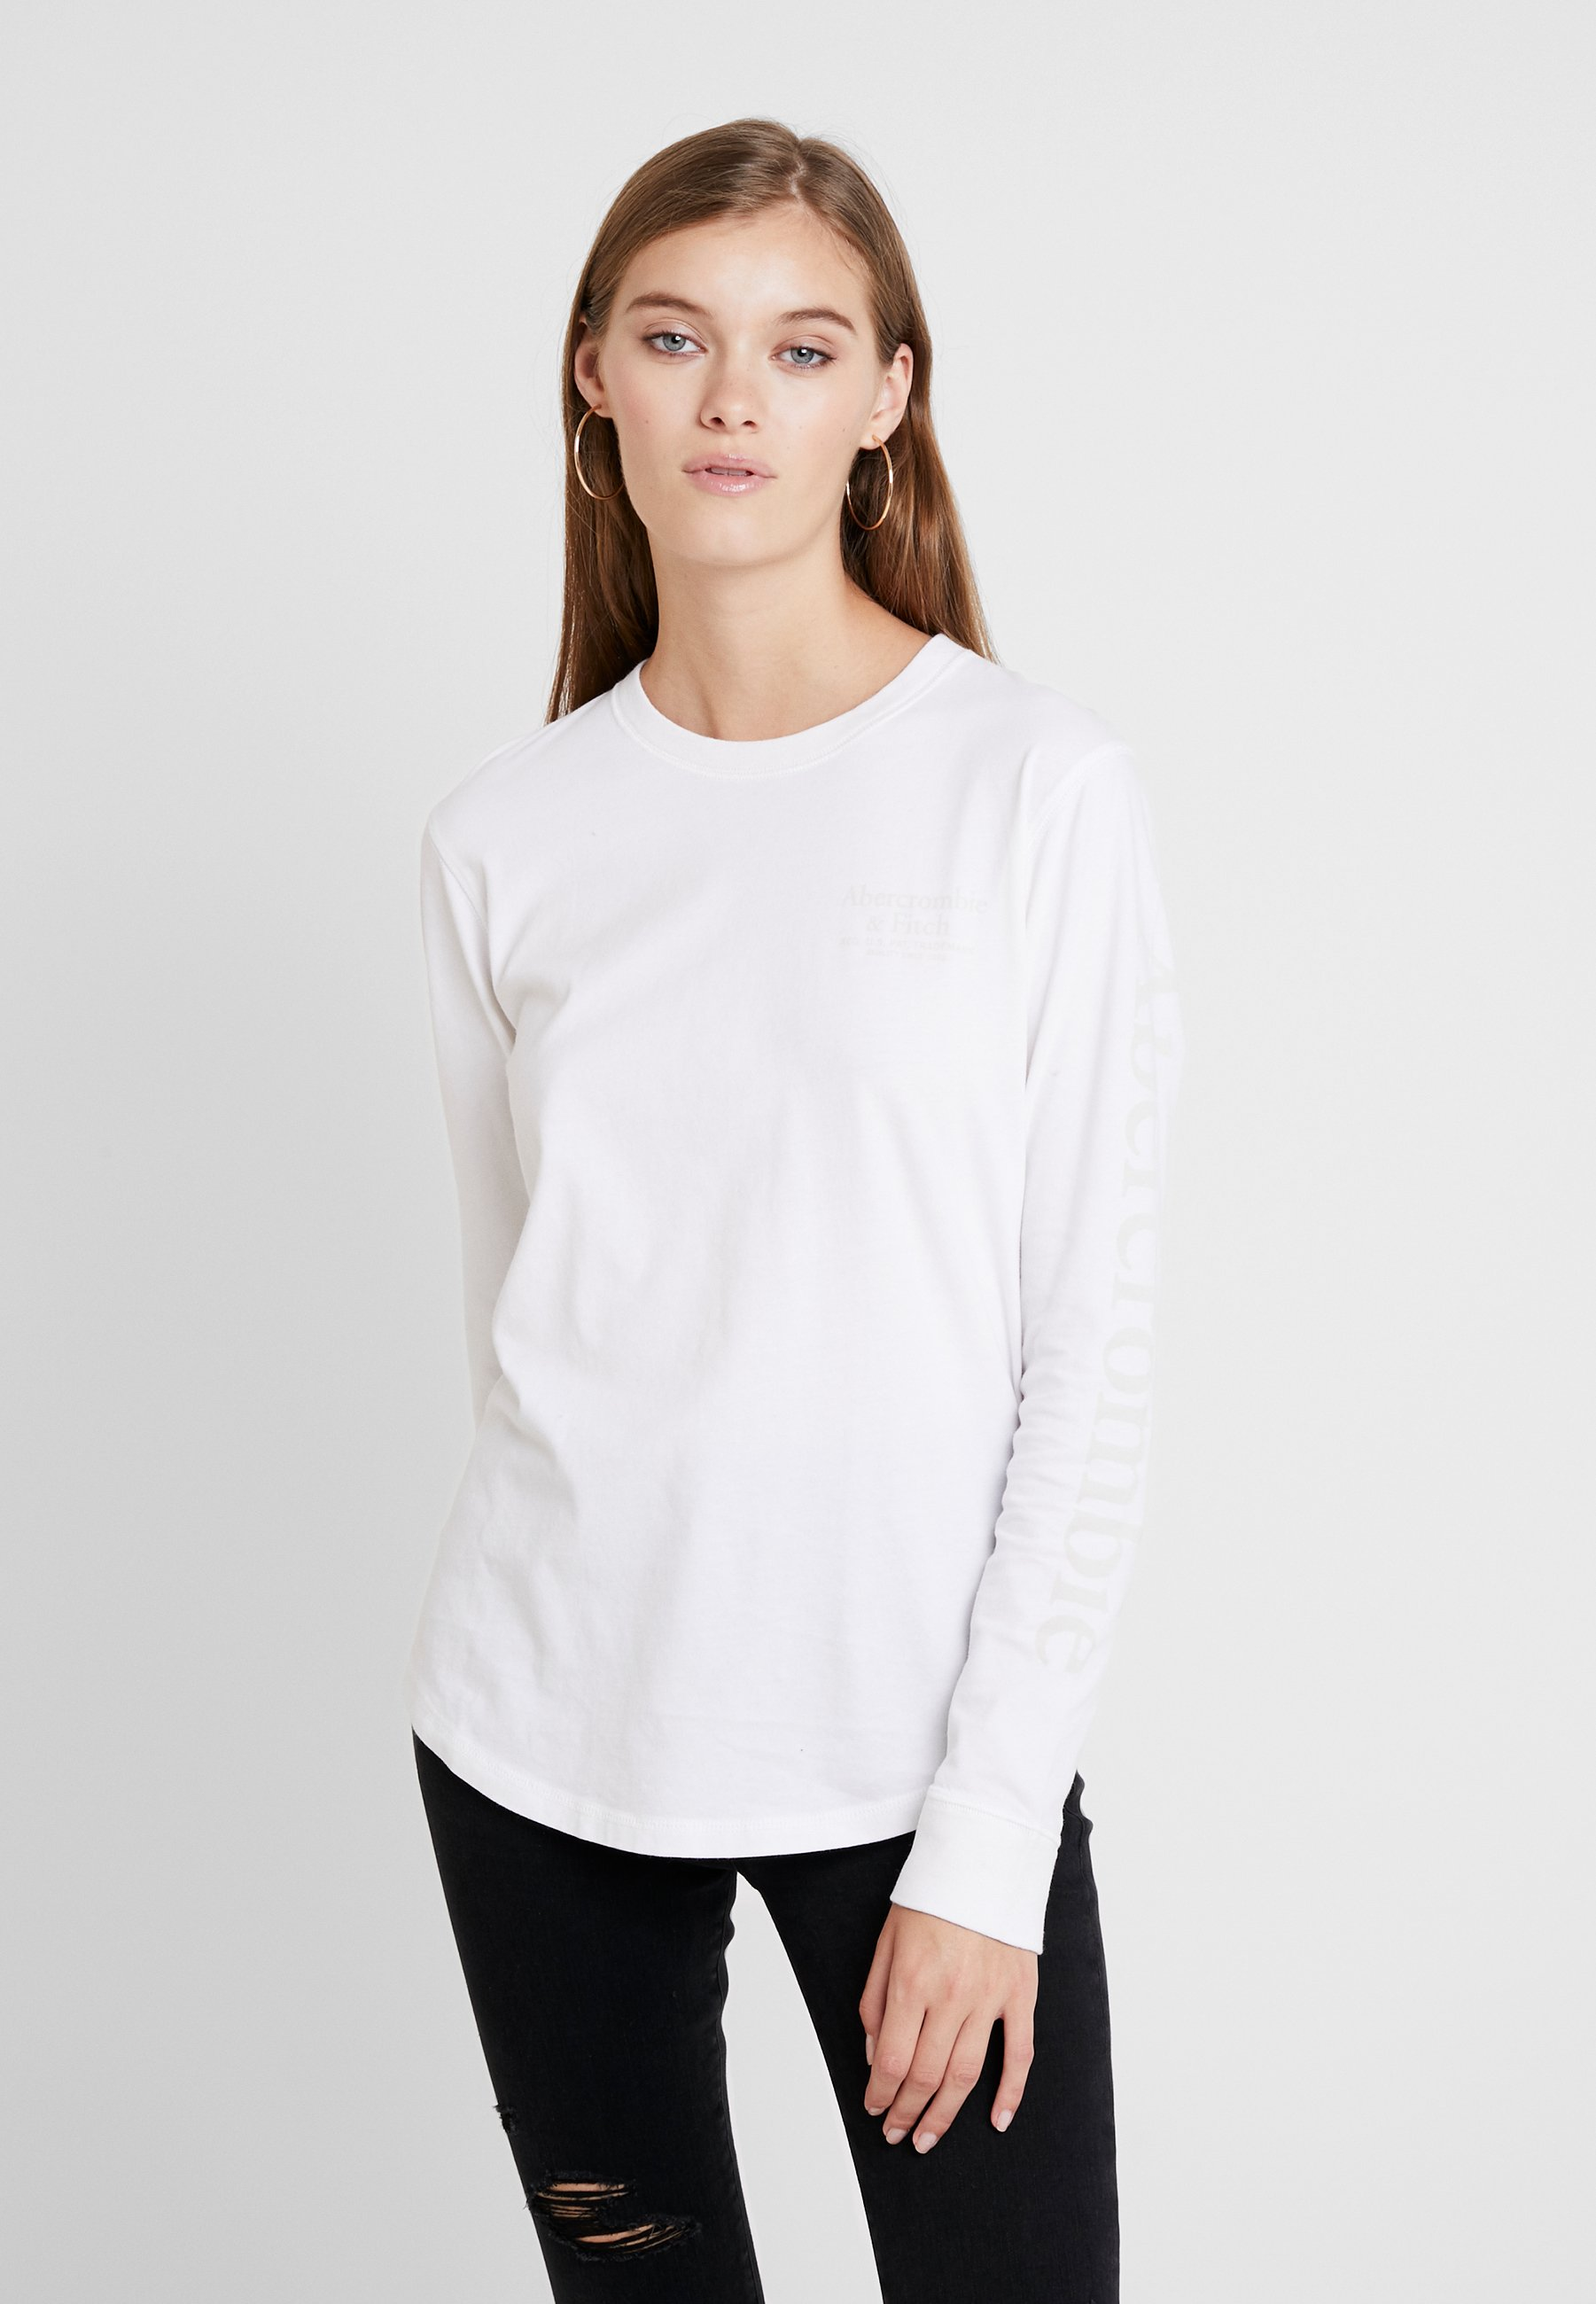 À Long Sleeve Fitch Logo TeeT Manches shirt Longues Abercrombieamp; White PiuOkXZT